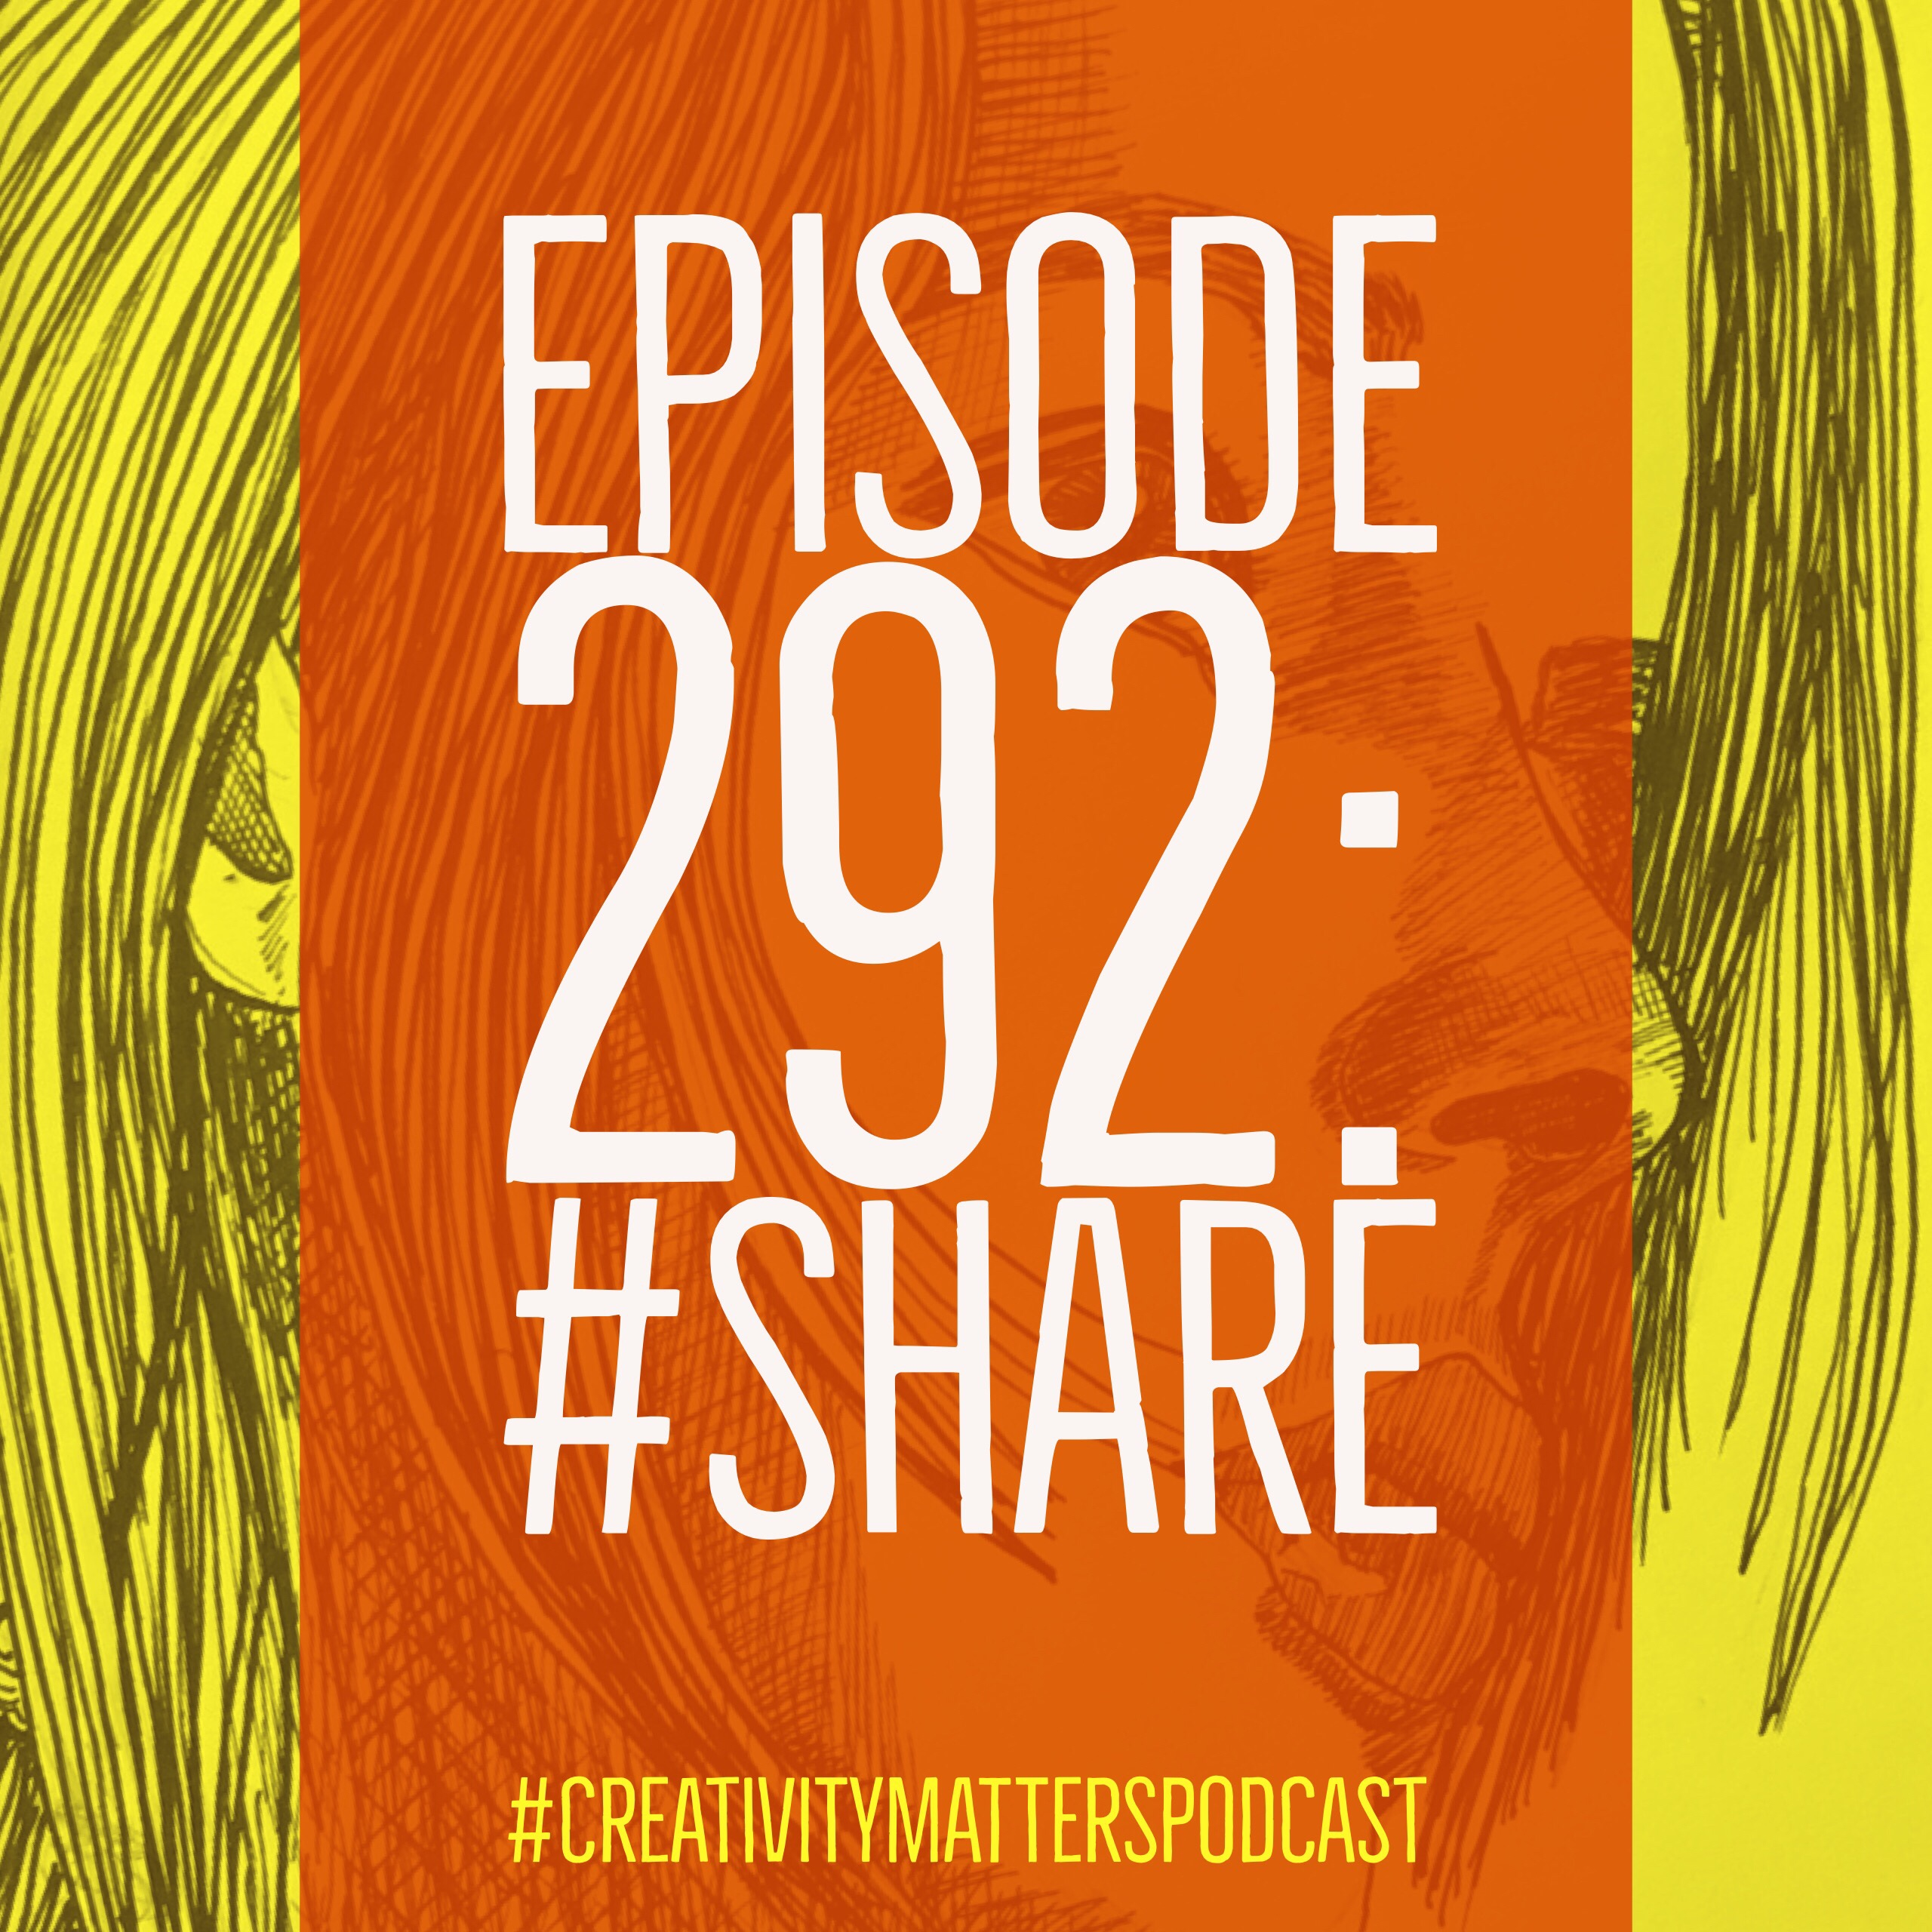 Episode 292: Share